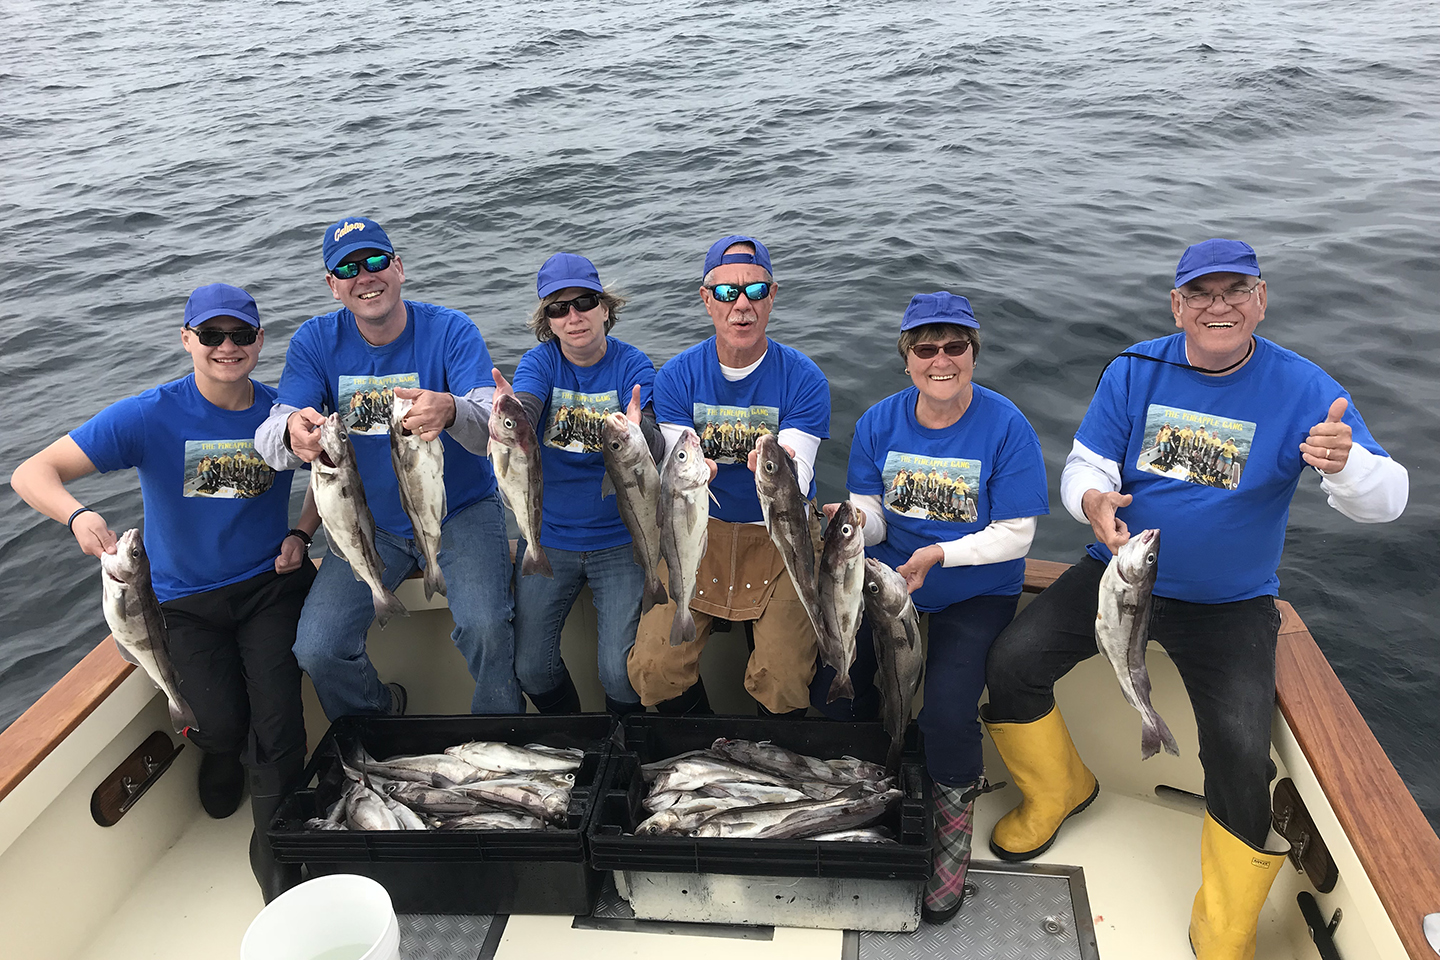 A group of anglers dressed in blue shirts and caps. The anglers are sitting at the back of a charter boat holding up some Haddock that they have just caught